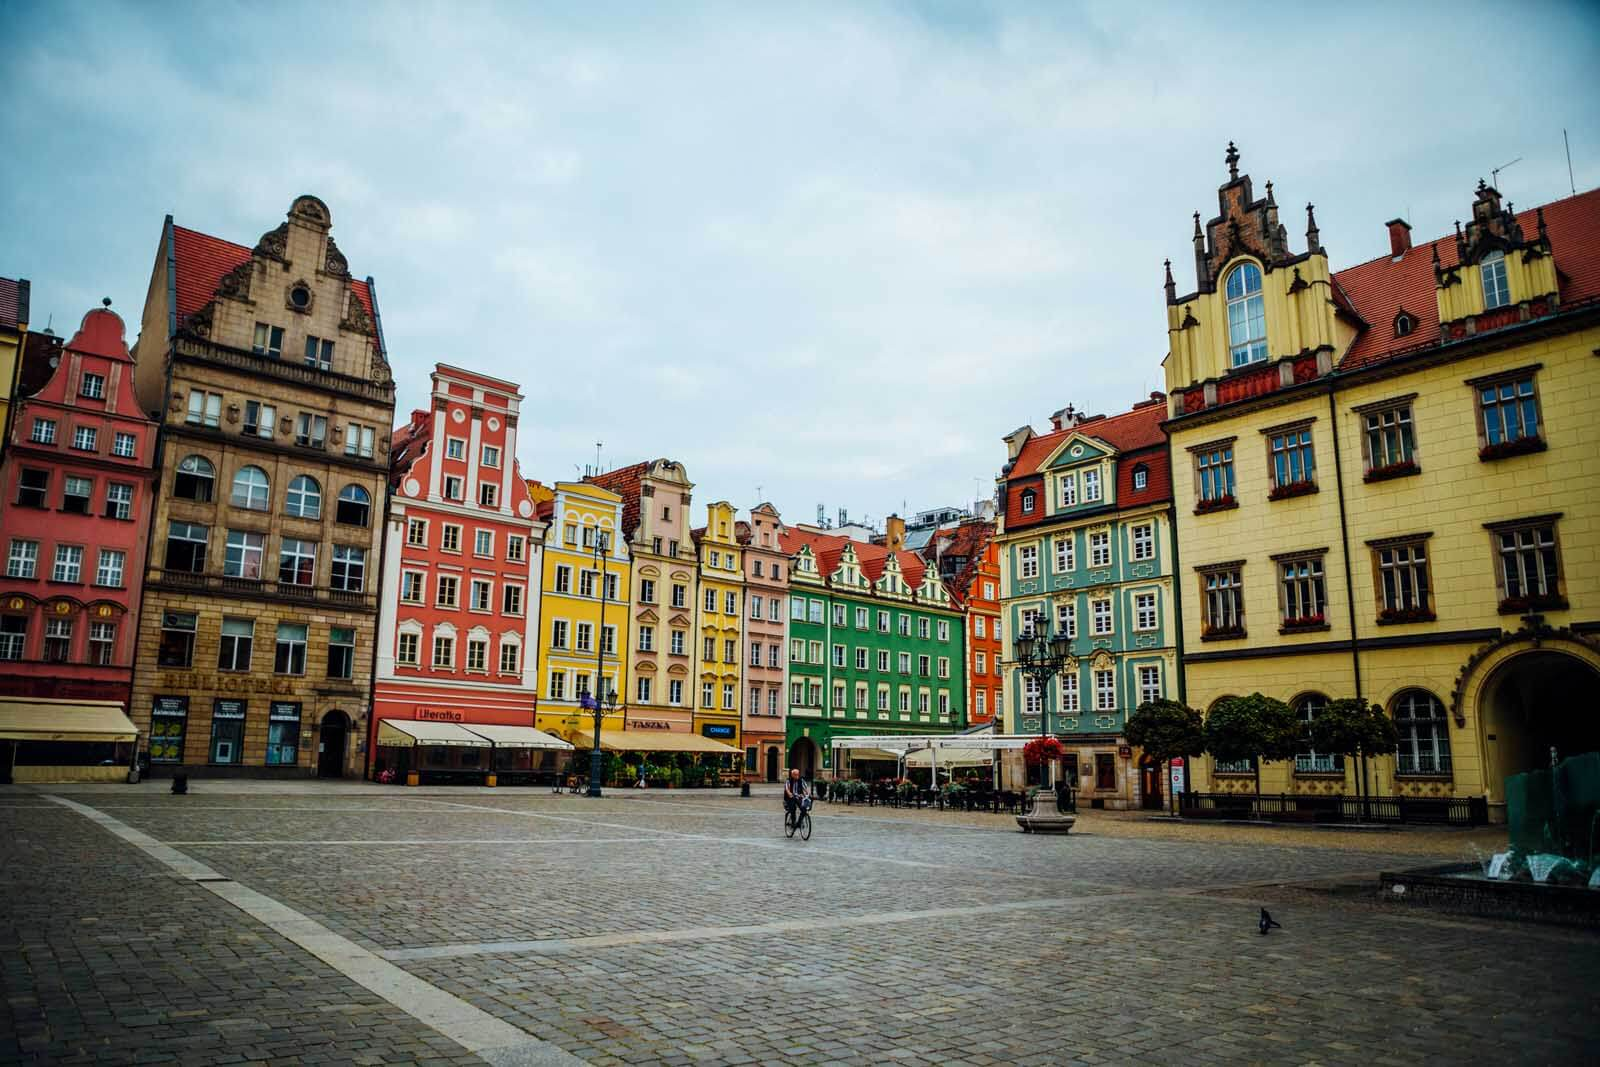 Colorful Main Market Square in Wroclaw